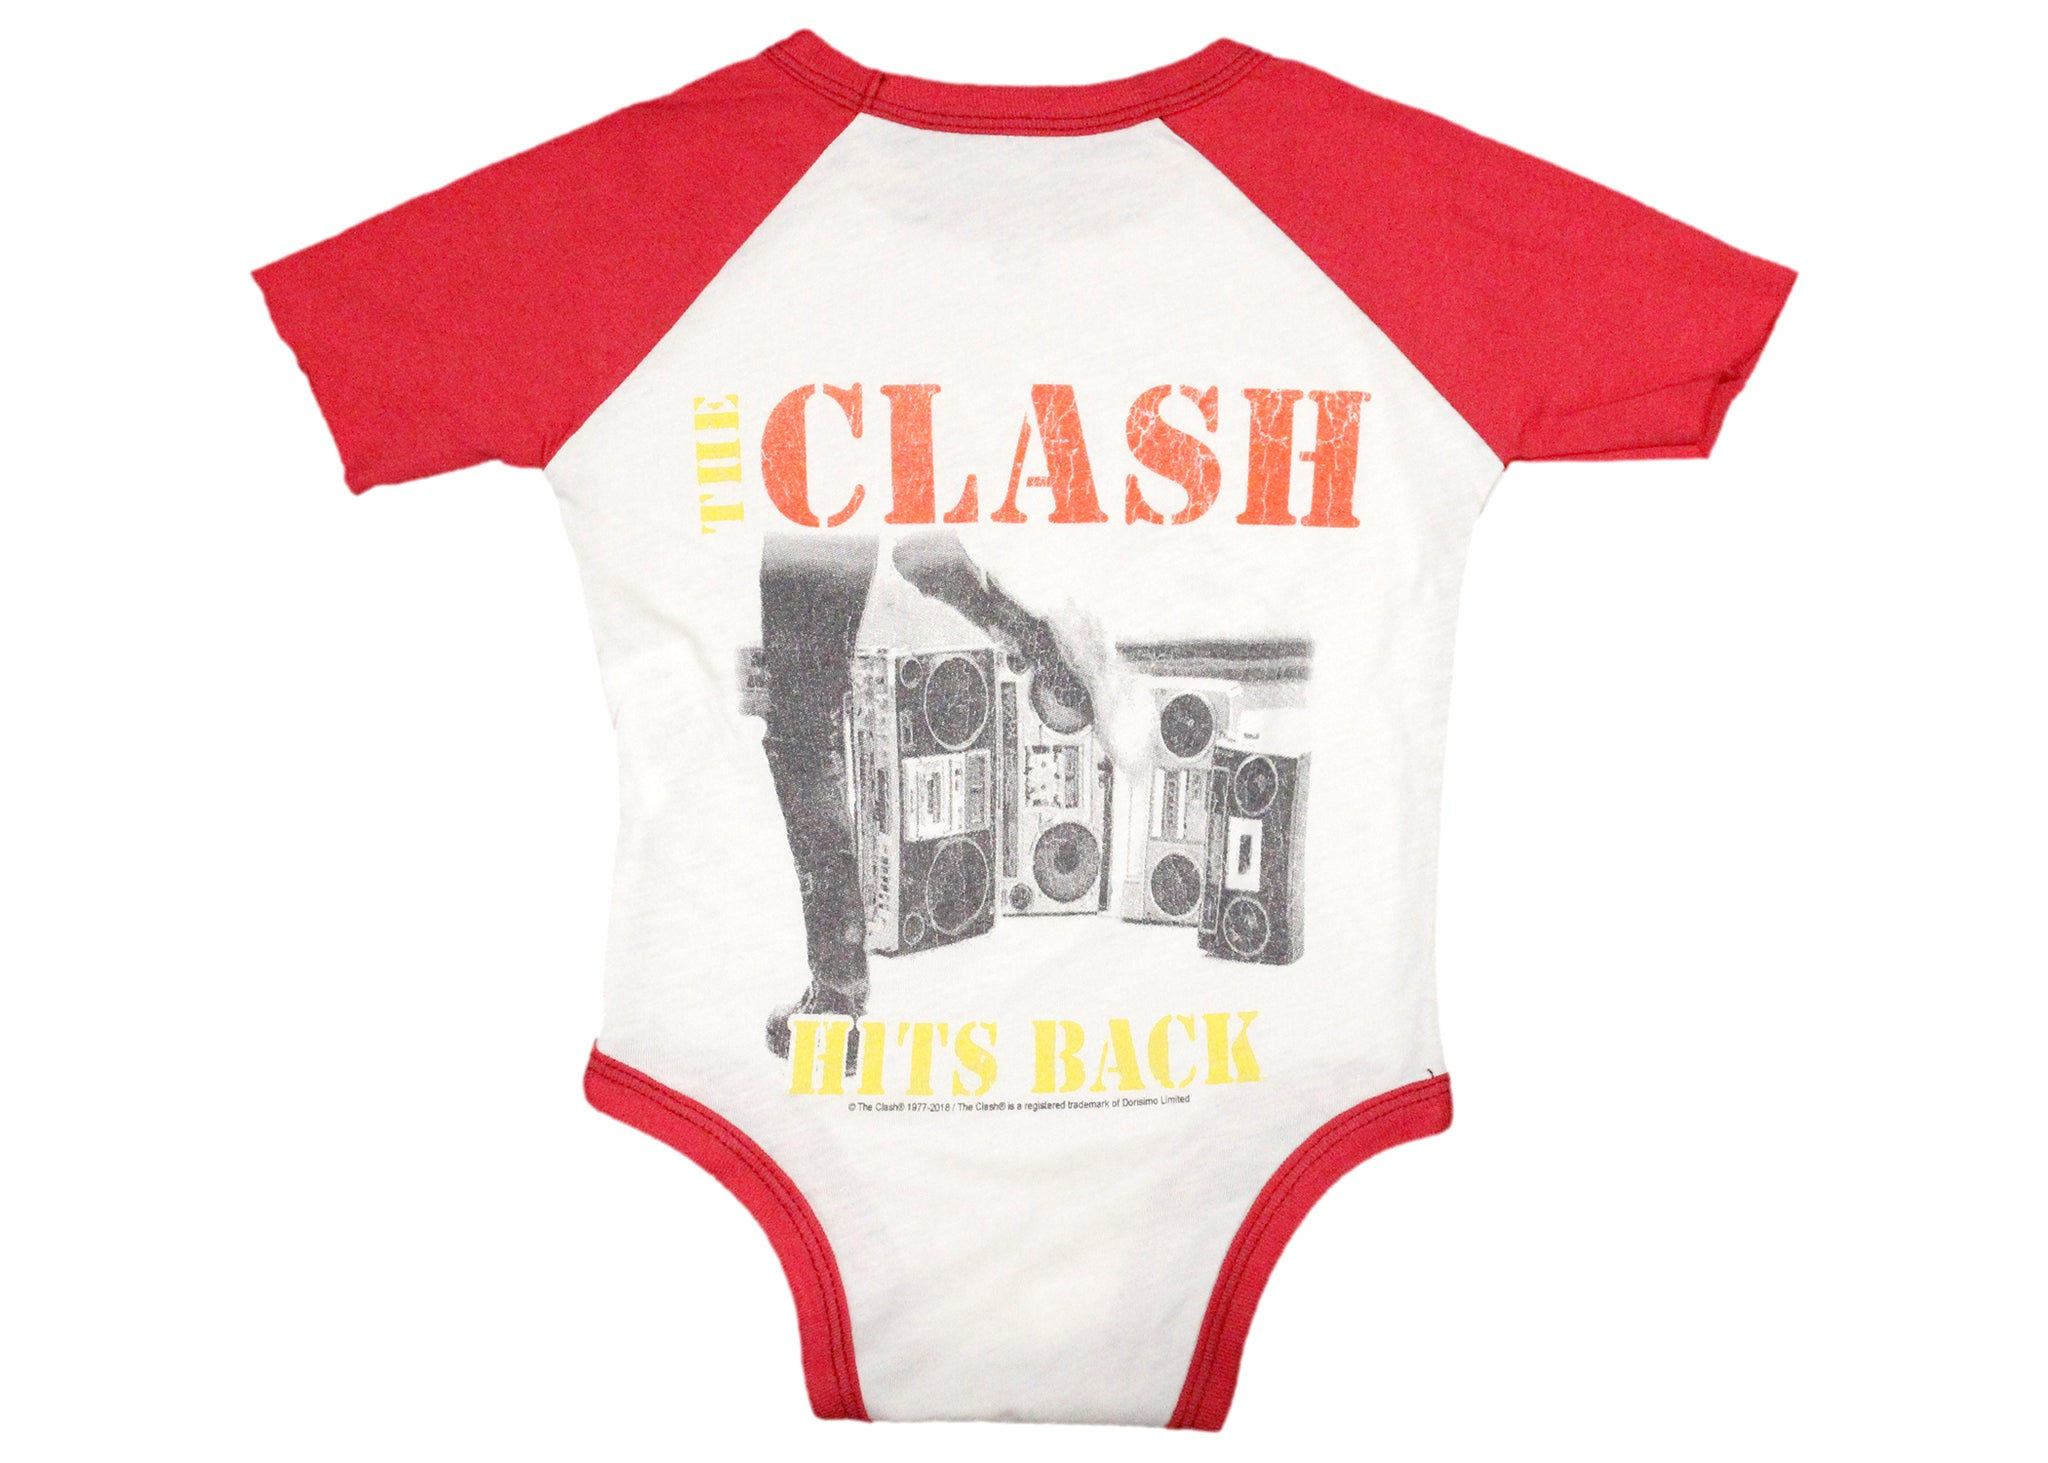 b856a9891 The Clash Hits Back Baby Onesie – Spacedust